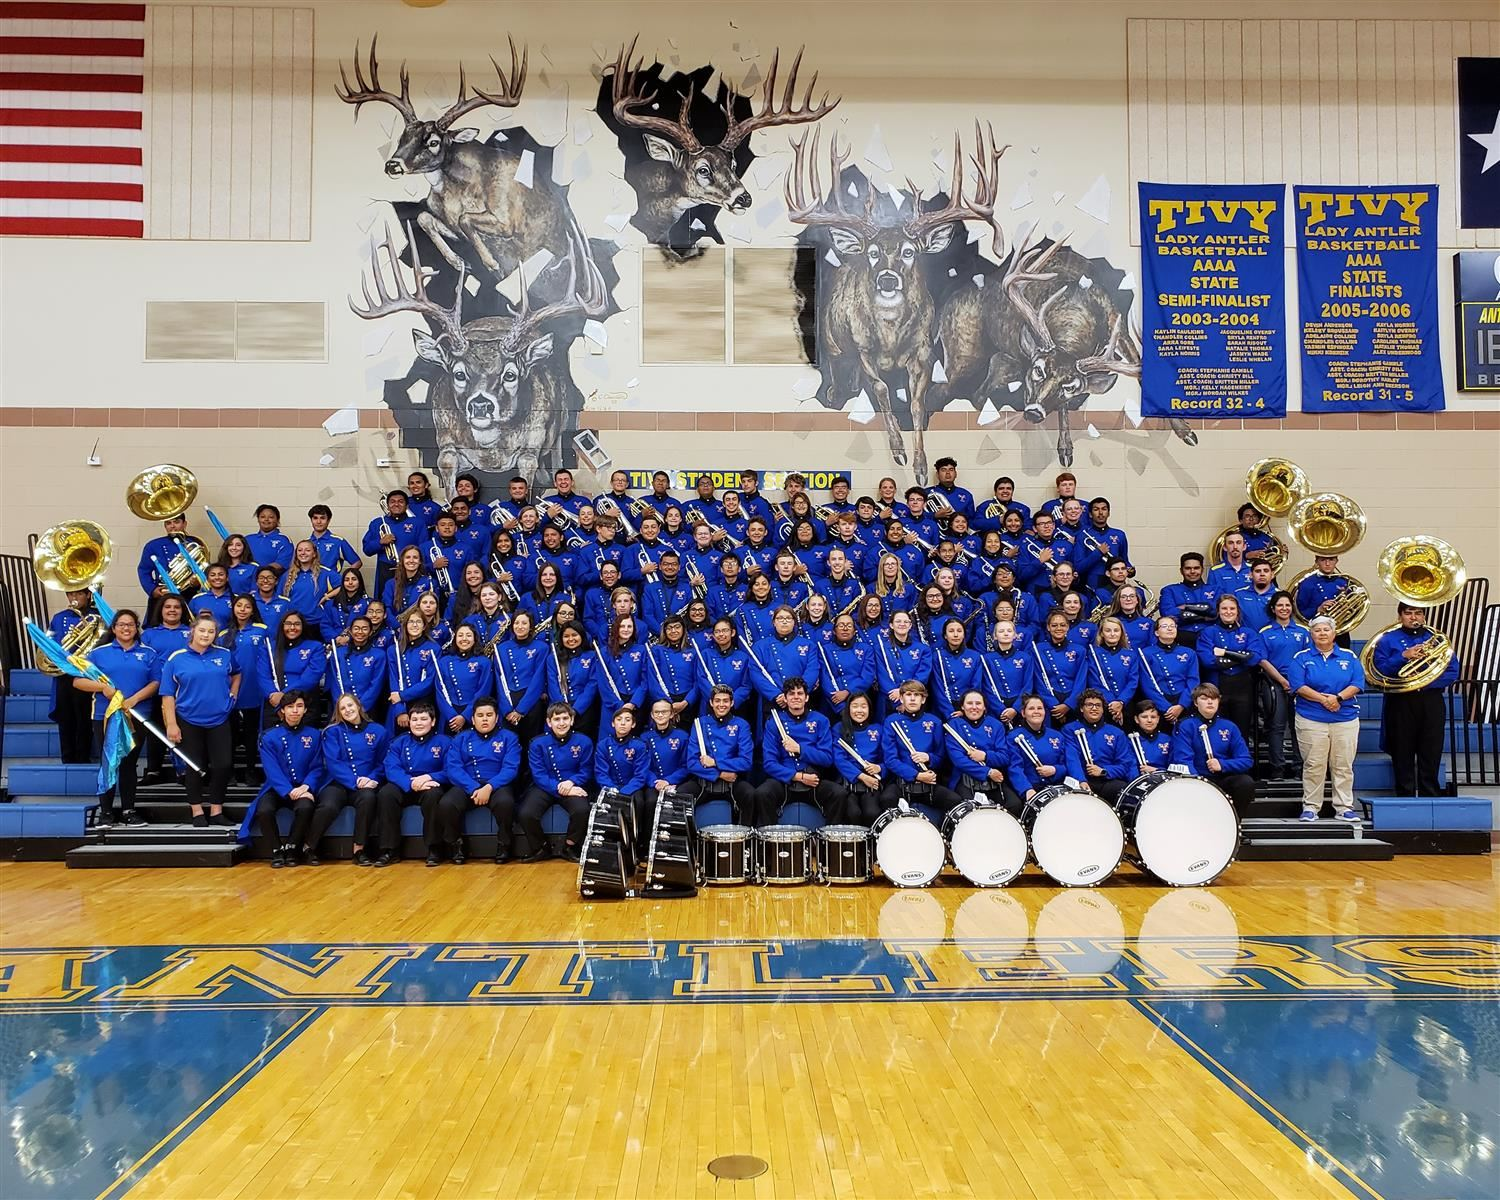 Tivy High School Band 2019-2020